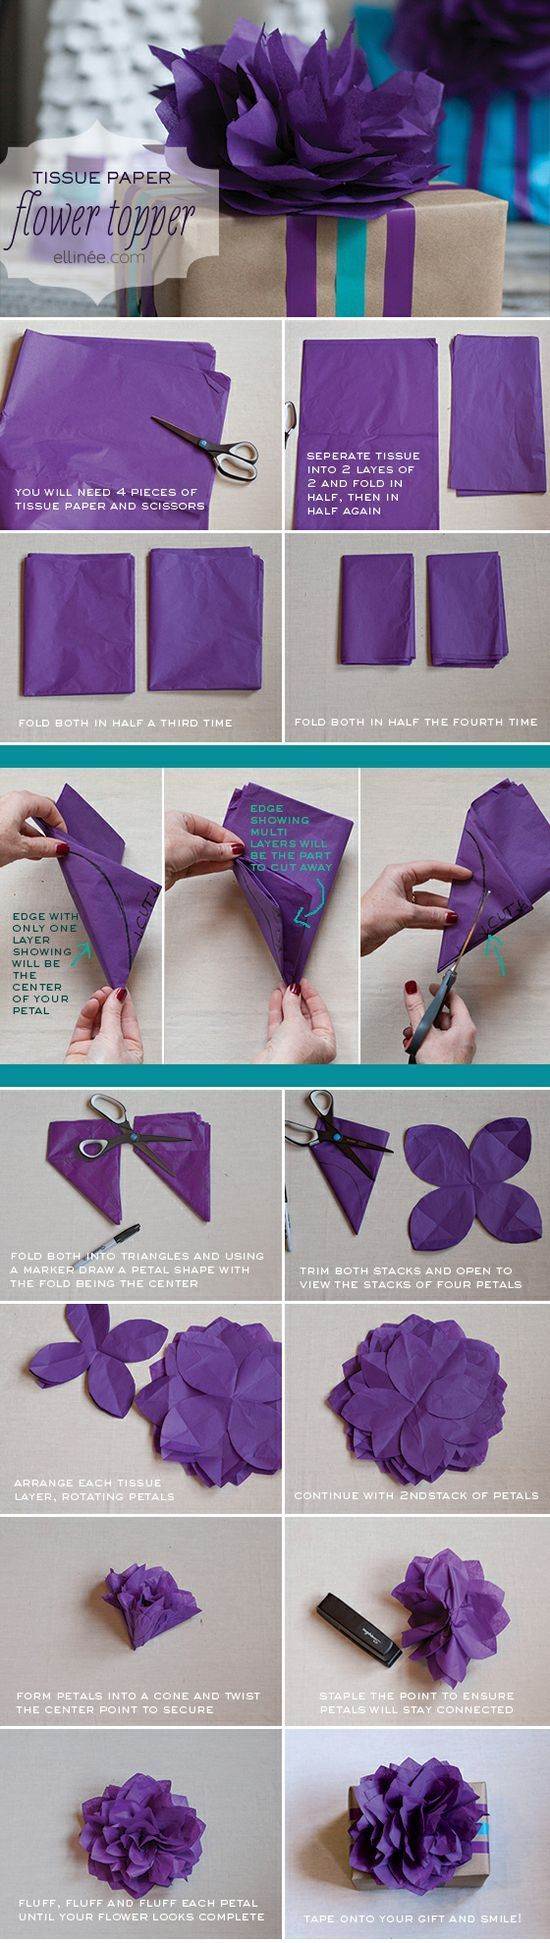 tissue paper craft ideas 136 best images about tissue paper craft ideas on 5587